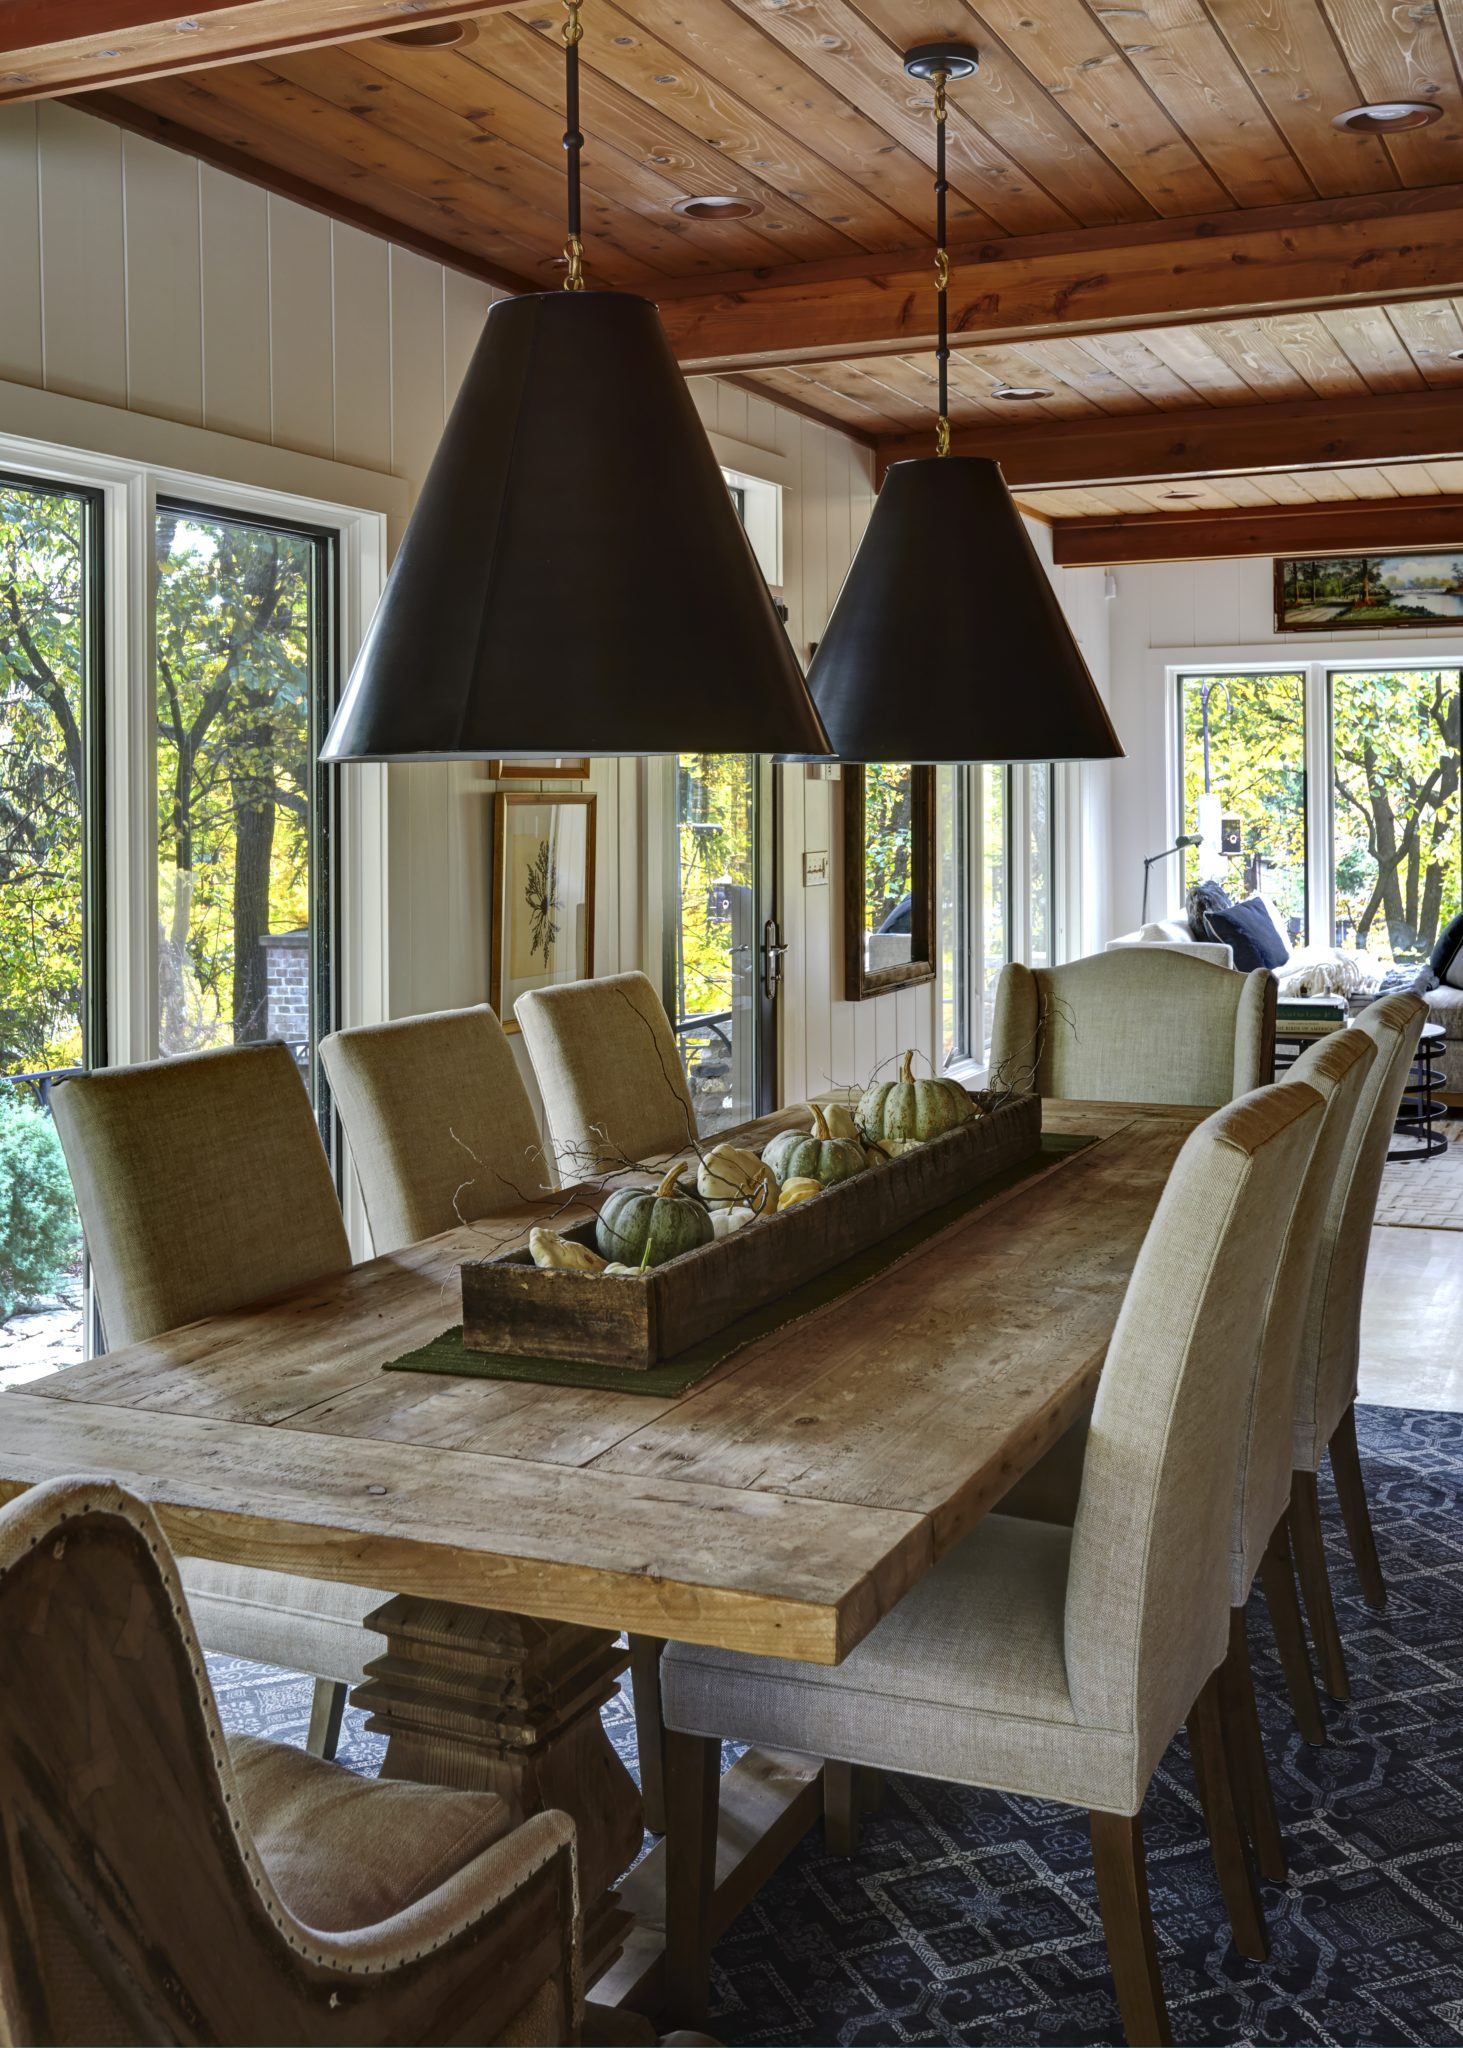 A pair of shaded light fixtures casts a soft glow over the trestle table. By Schlagenhaft Studio